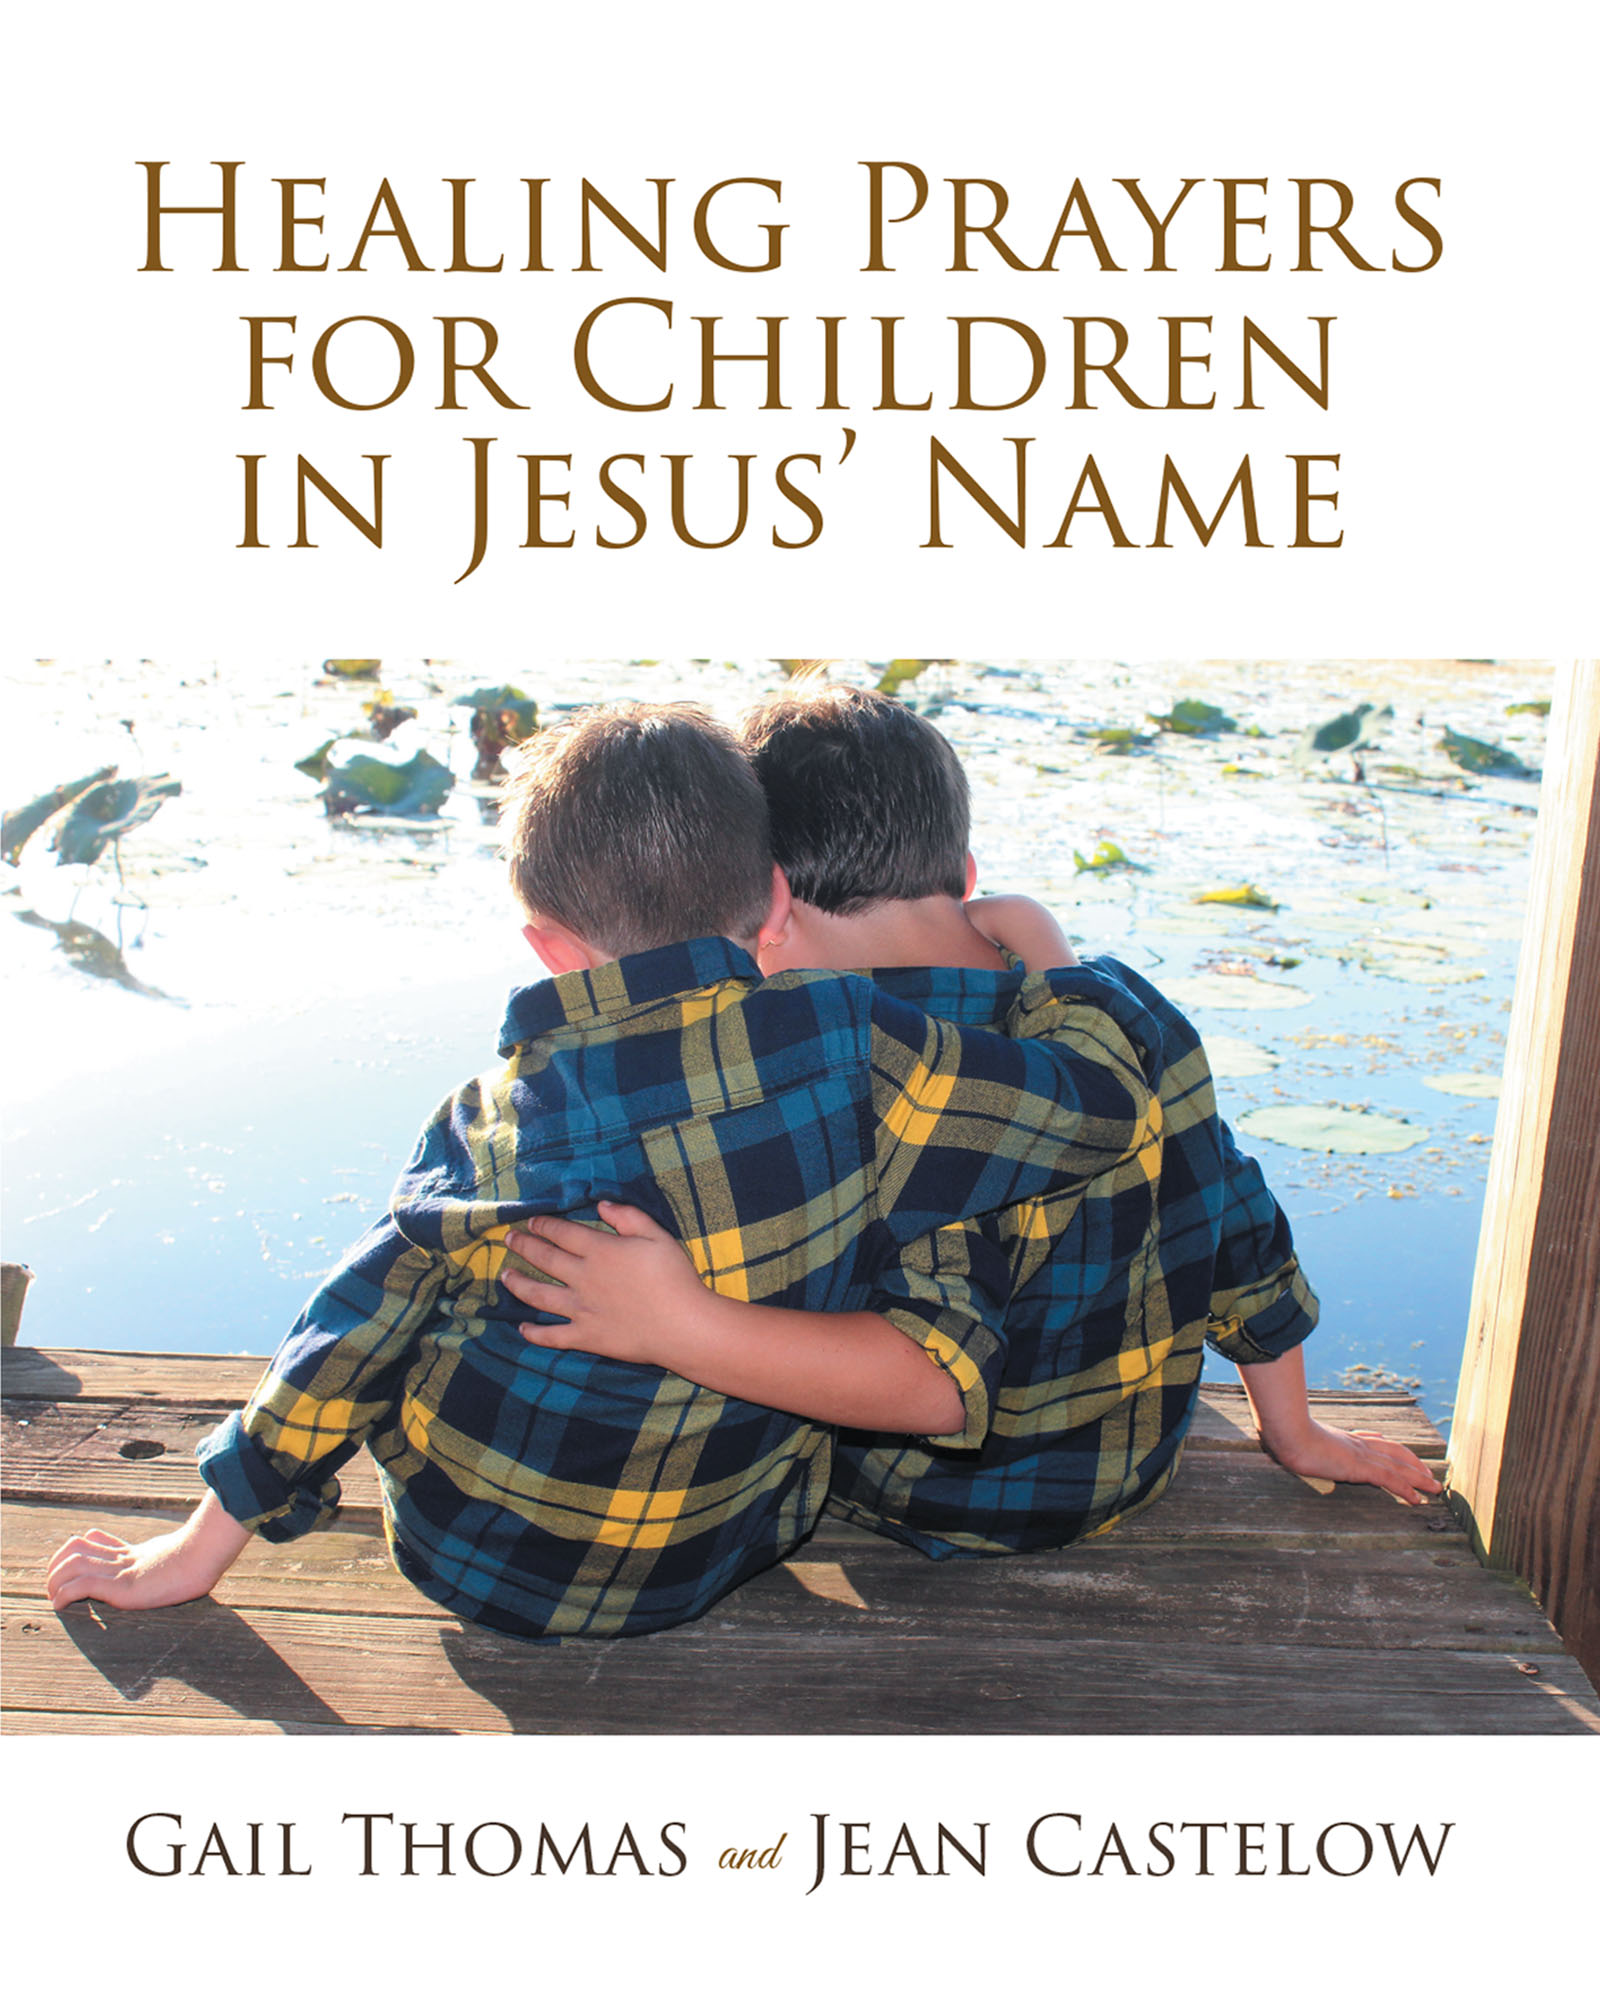 Healing Prayers for Children in Jesus' Name